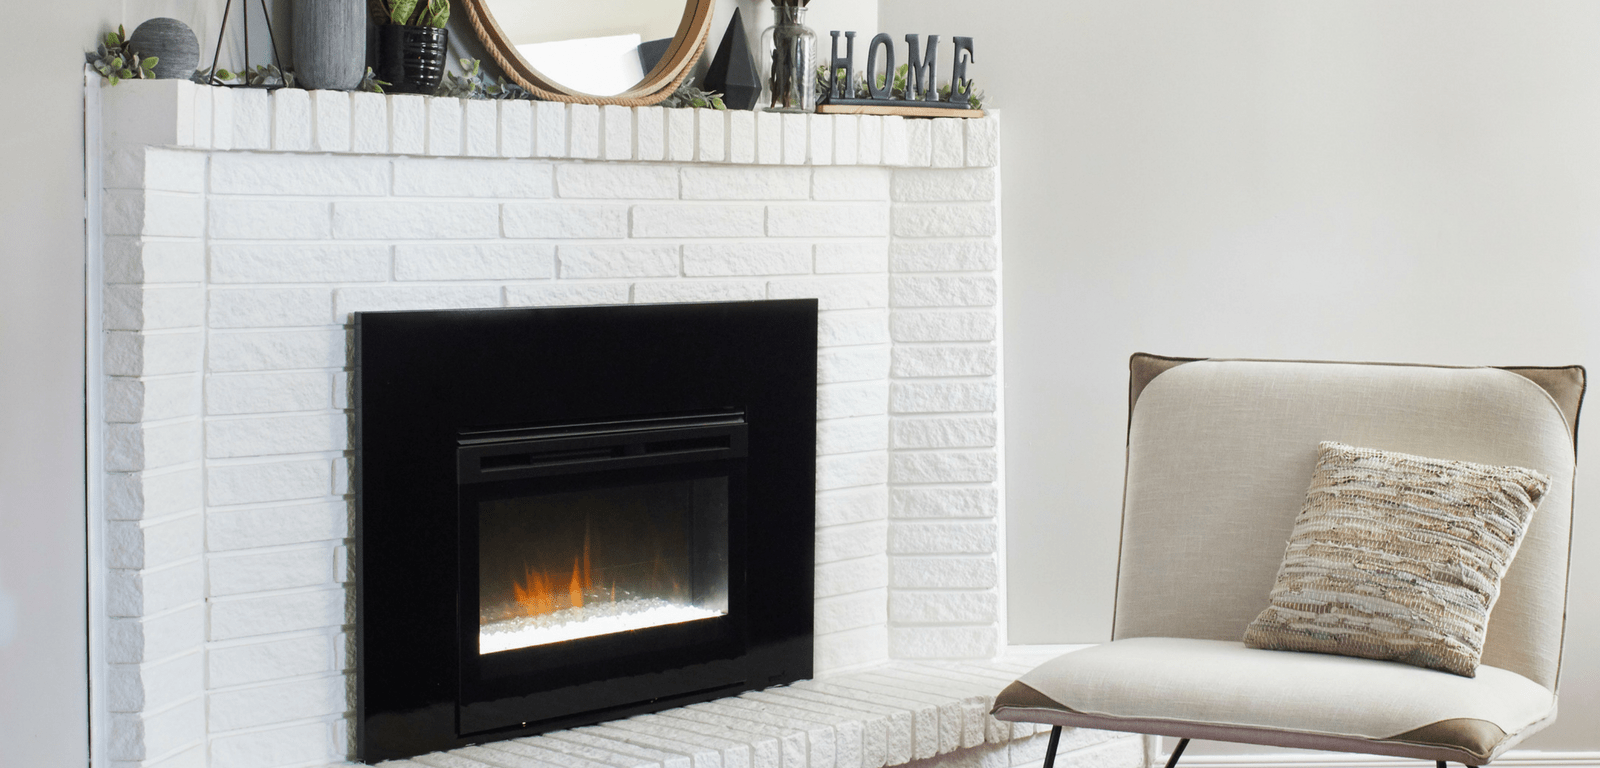 Gas to Electric Fireplace Remodel - Dimplex North America